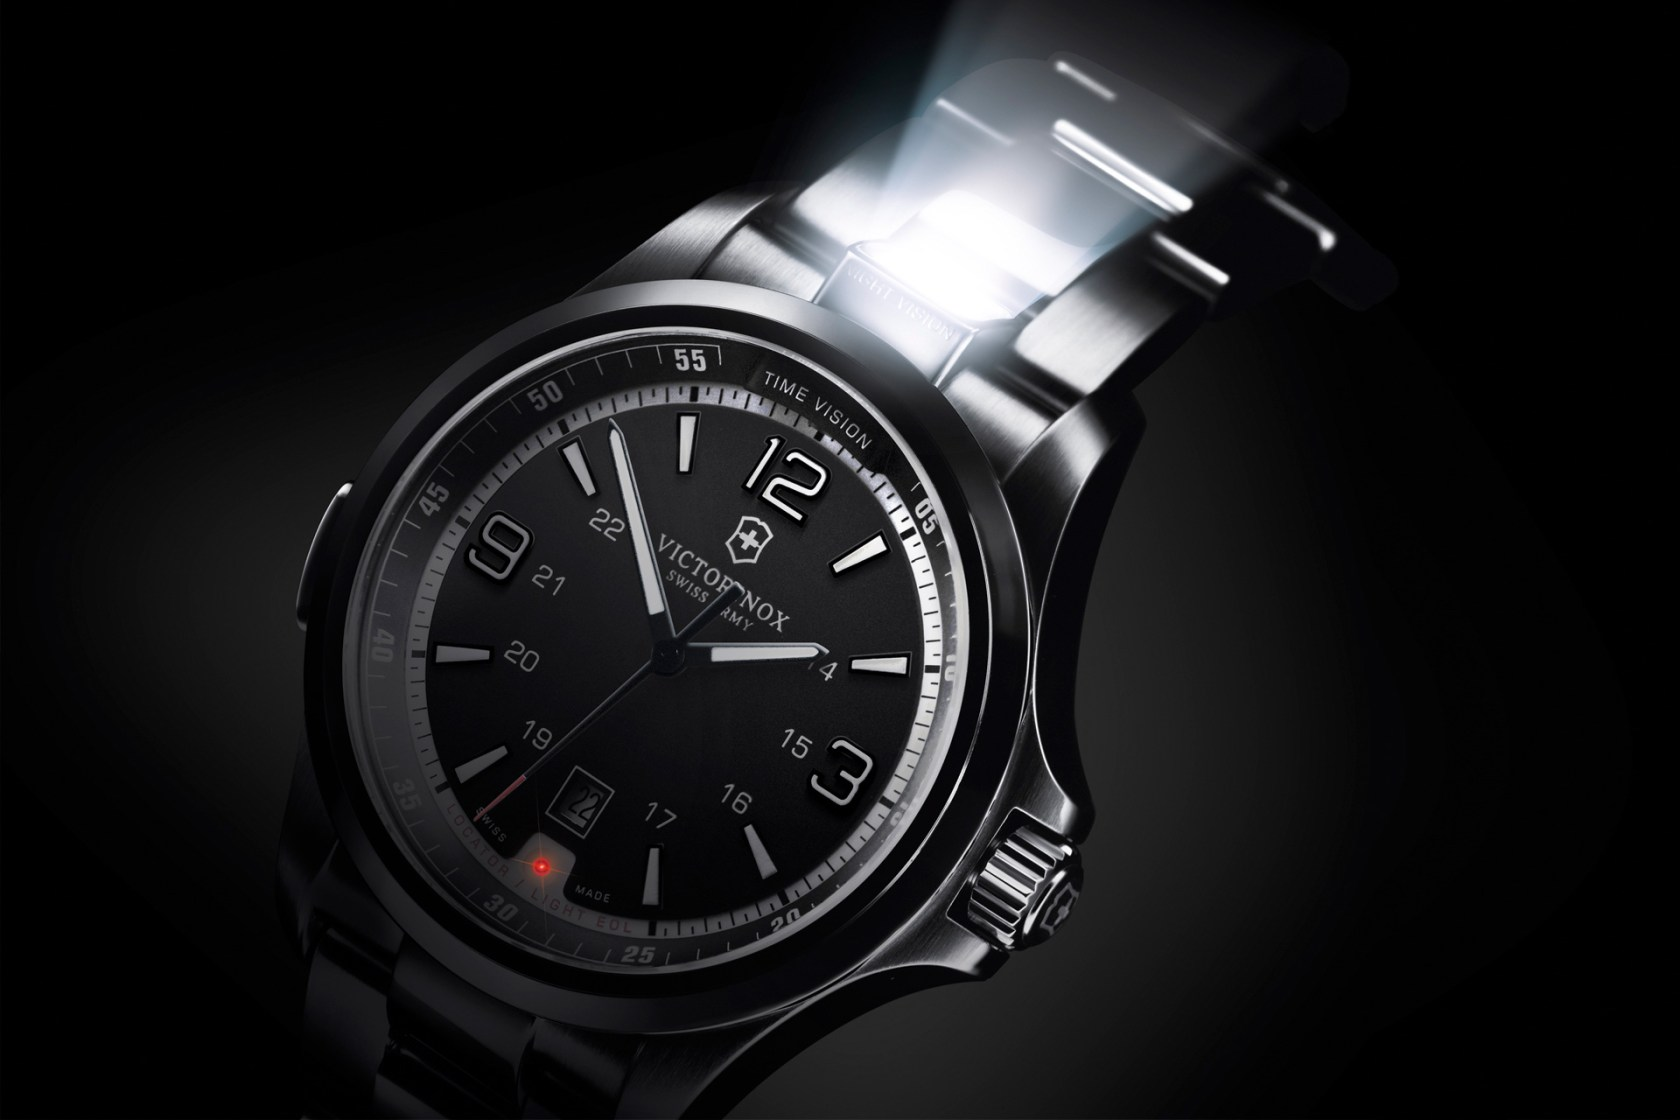 Victorinox Night Vision Watch with Rescue Function